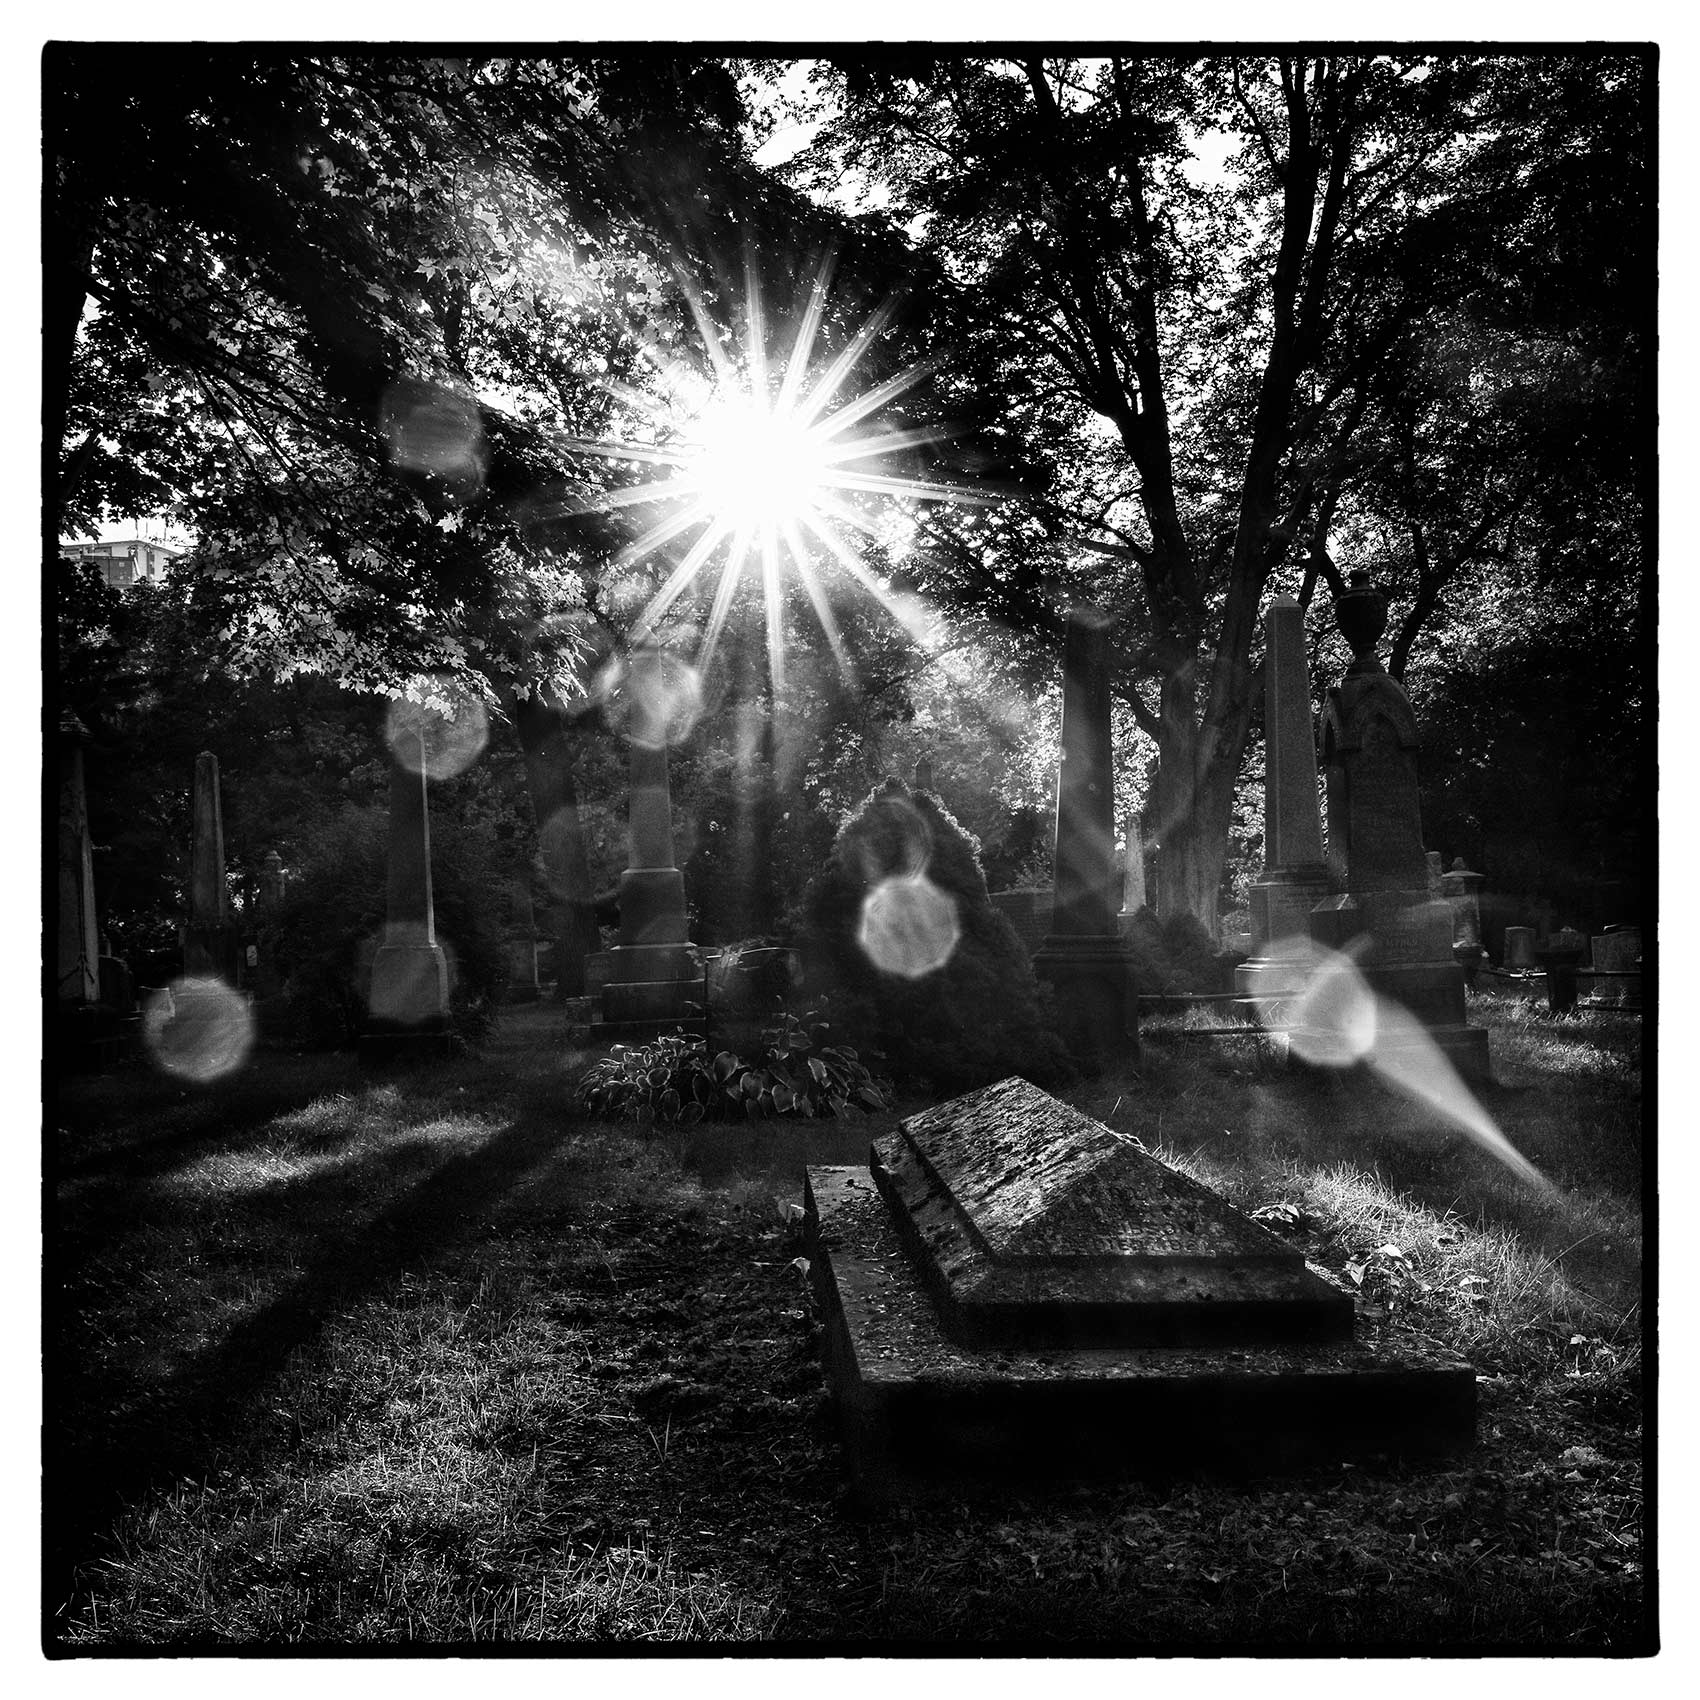 the sun breaks through the trees above a grave in Torontos St. James Cemetery